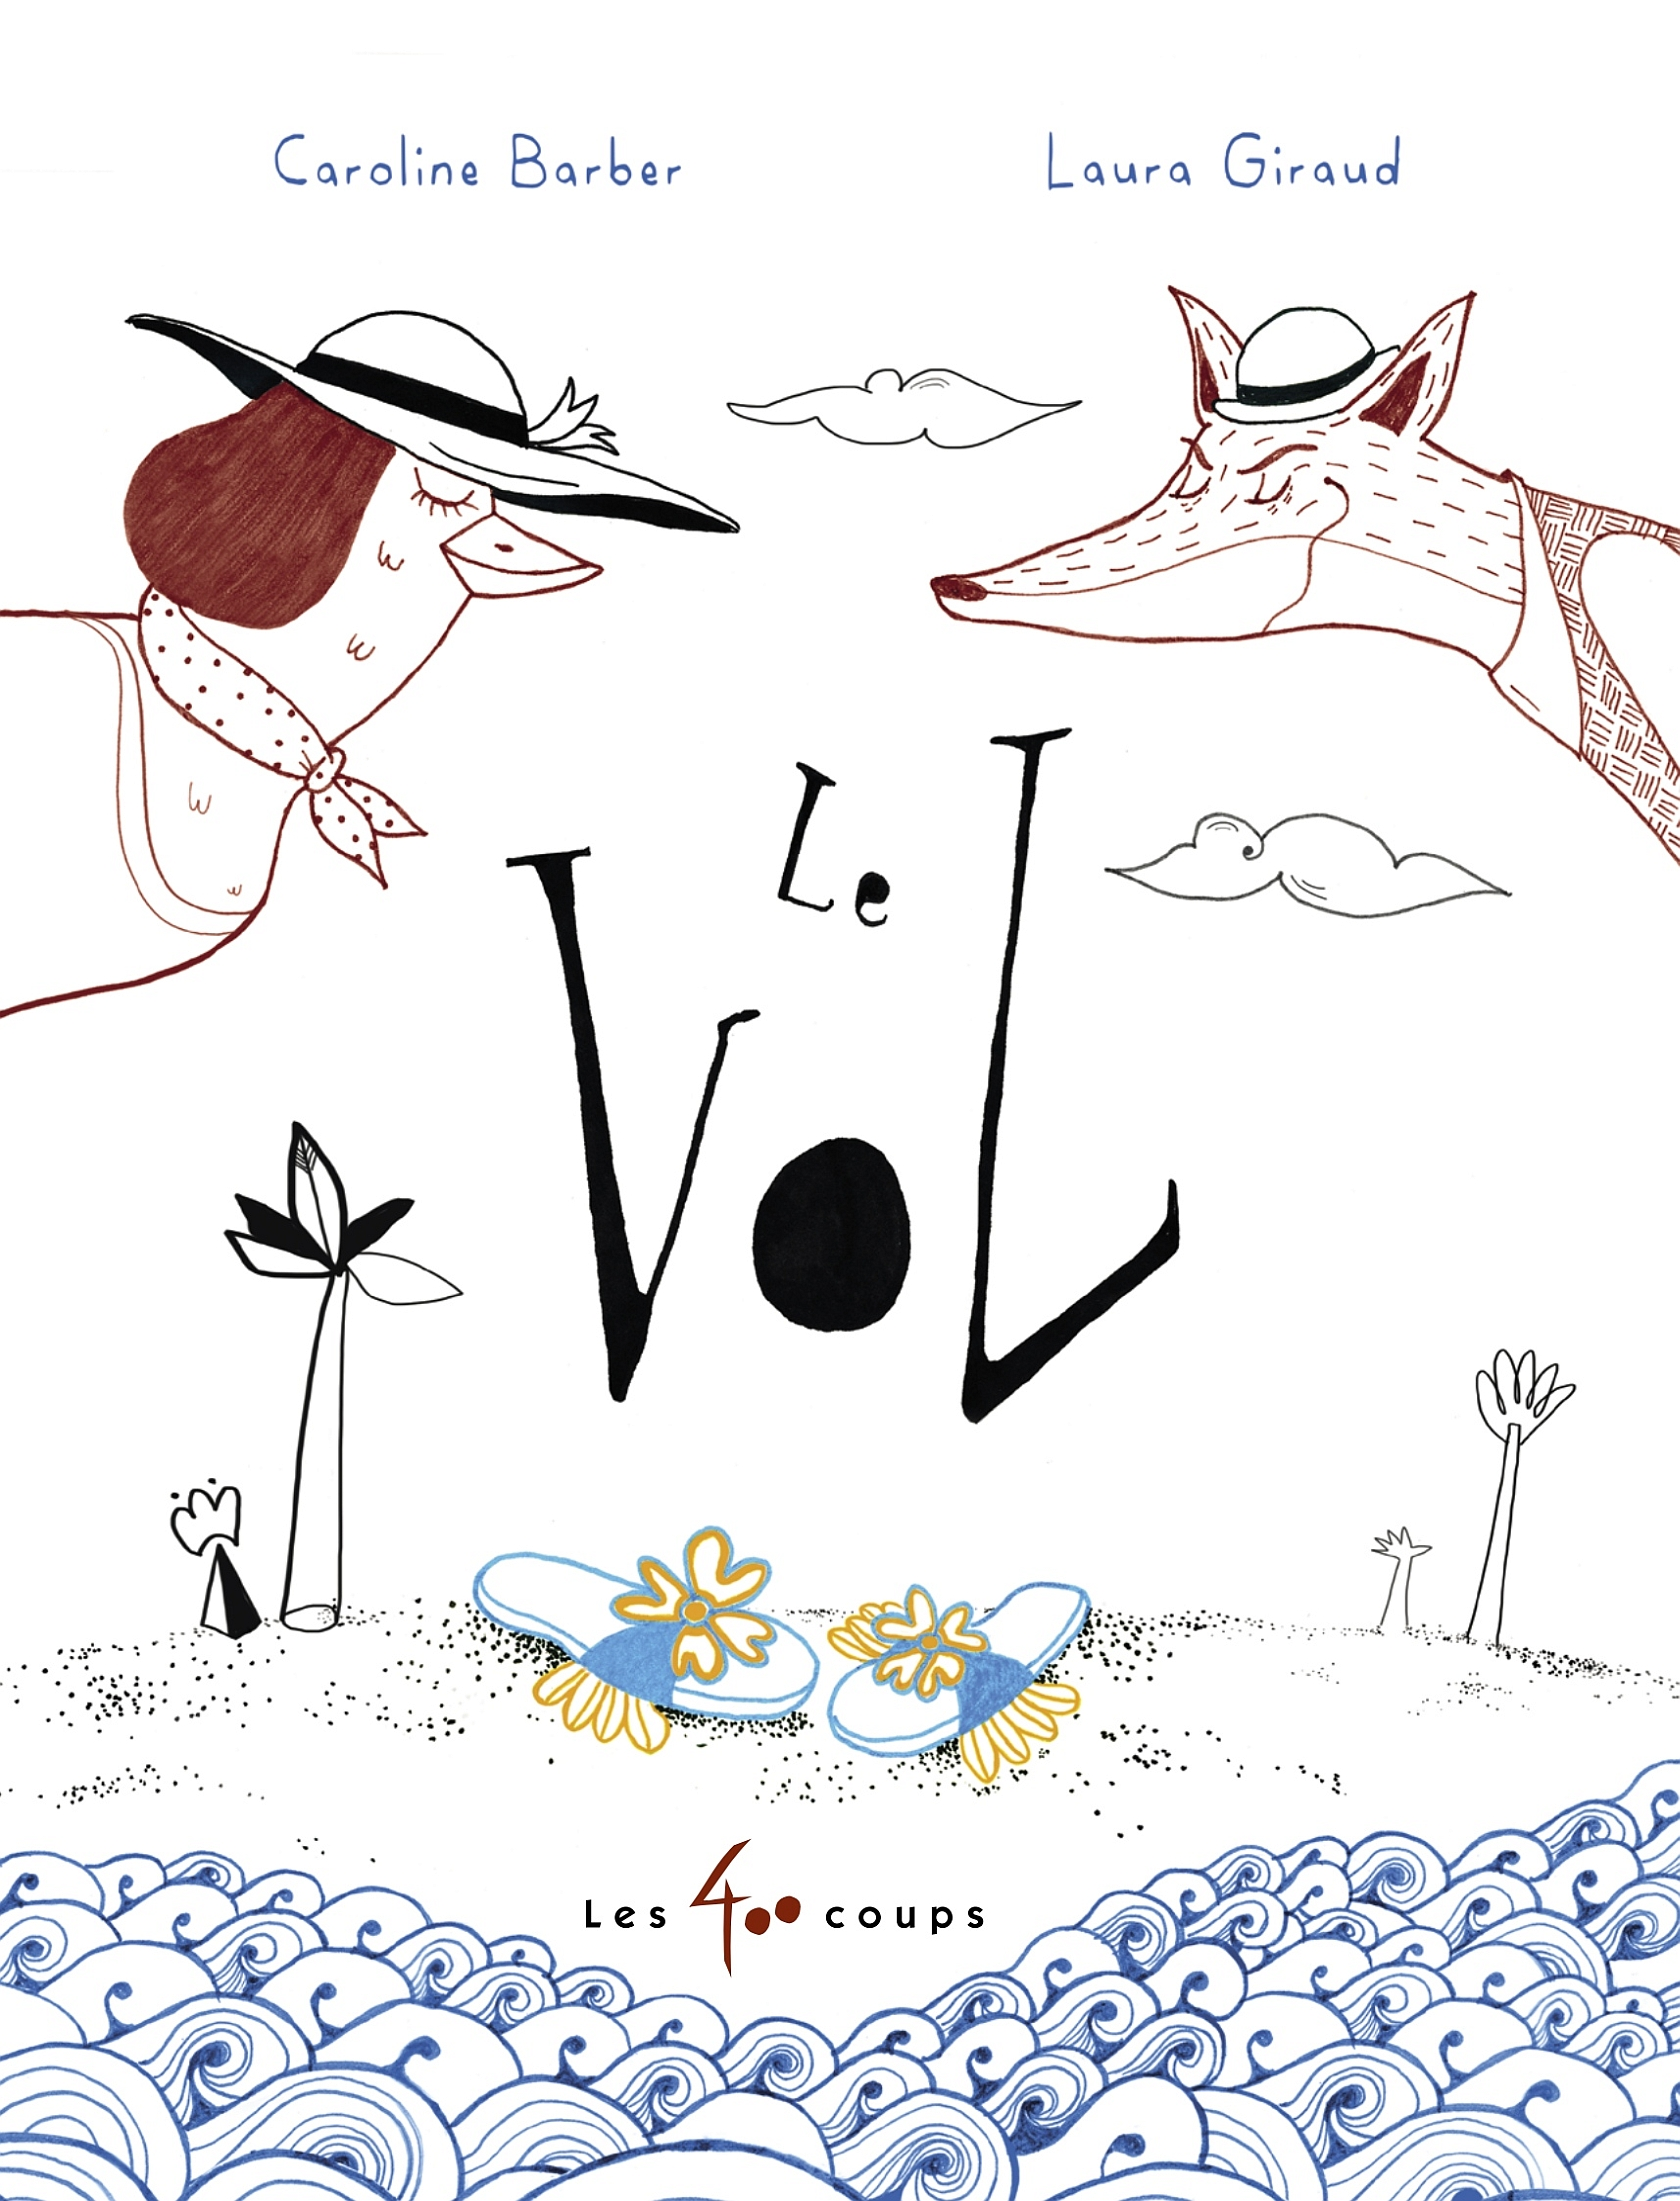 Le vol, Laura Giraud